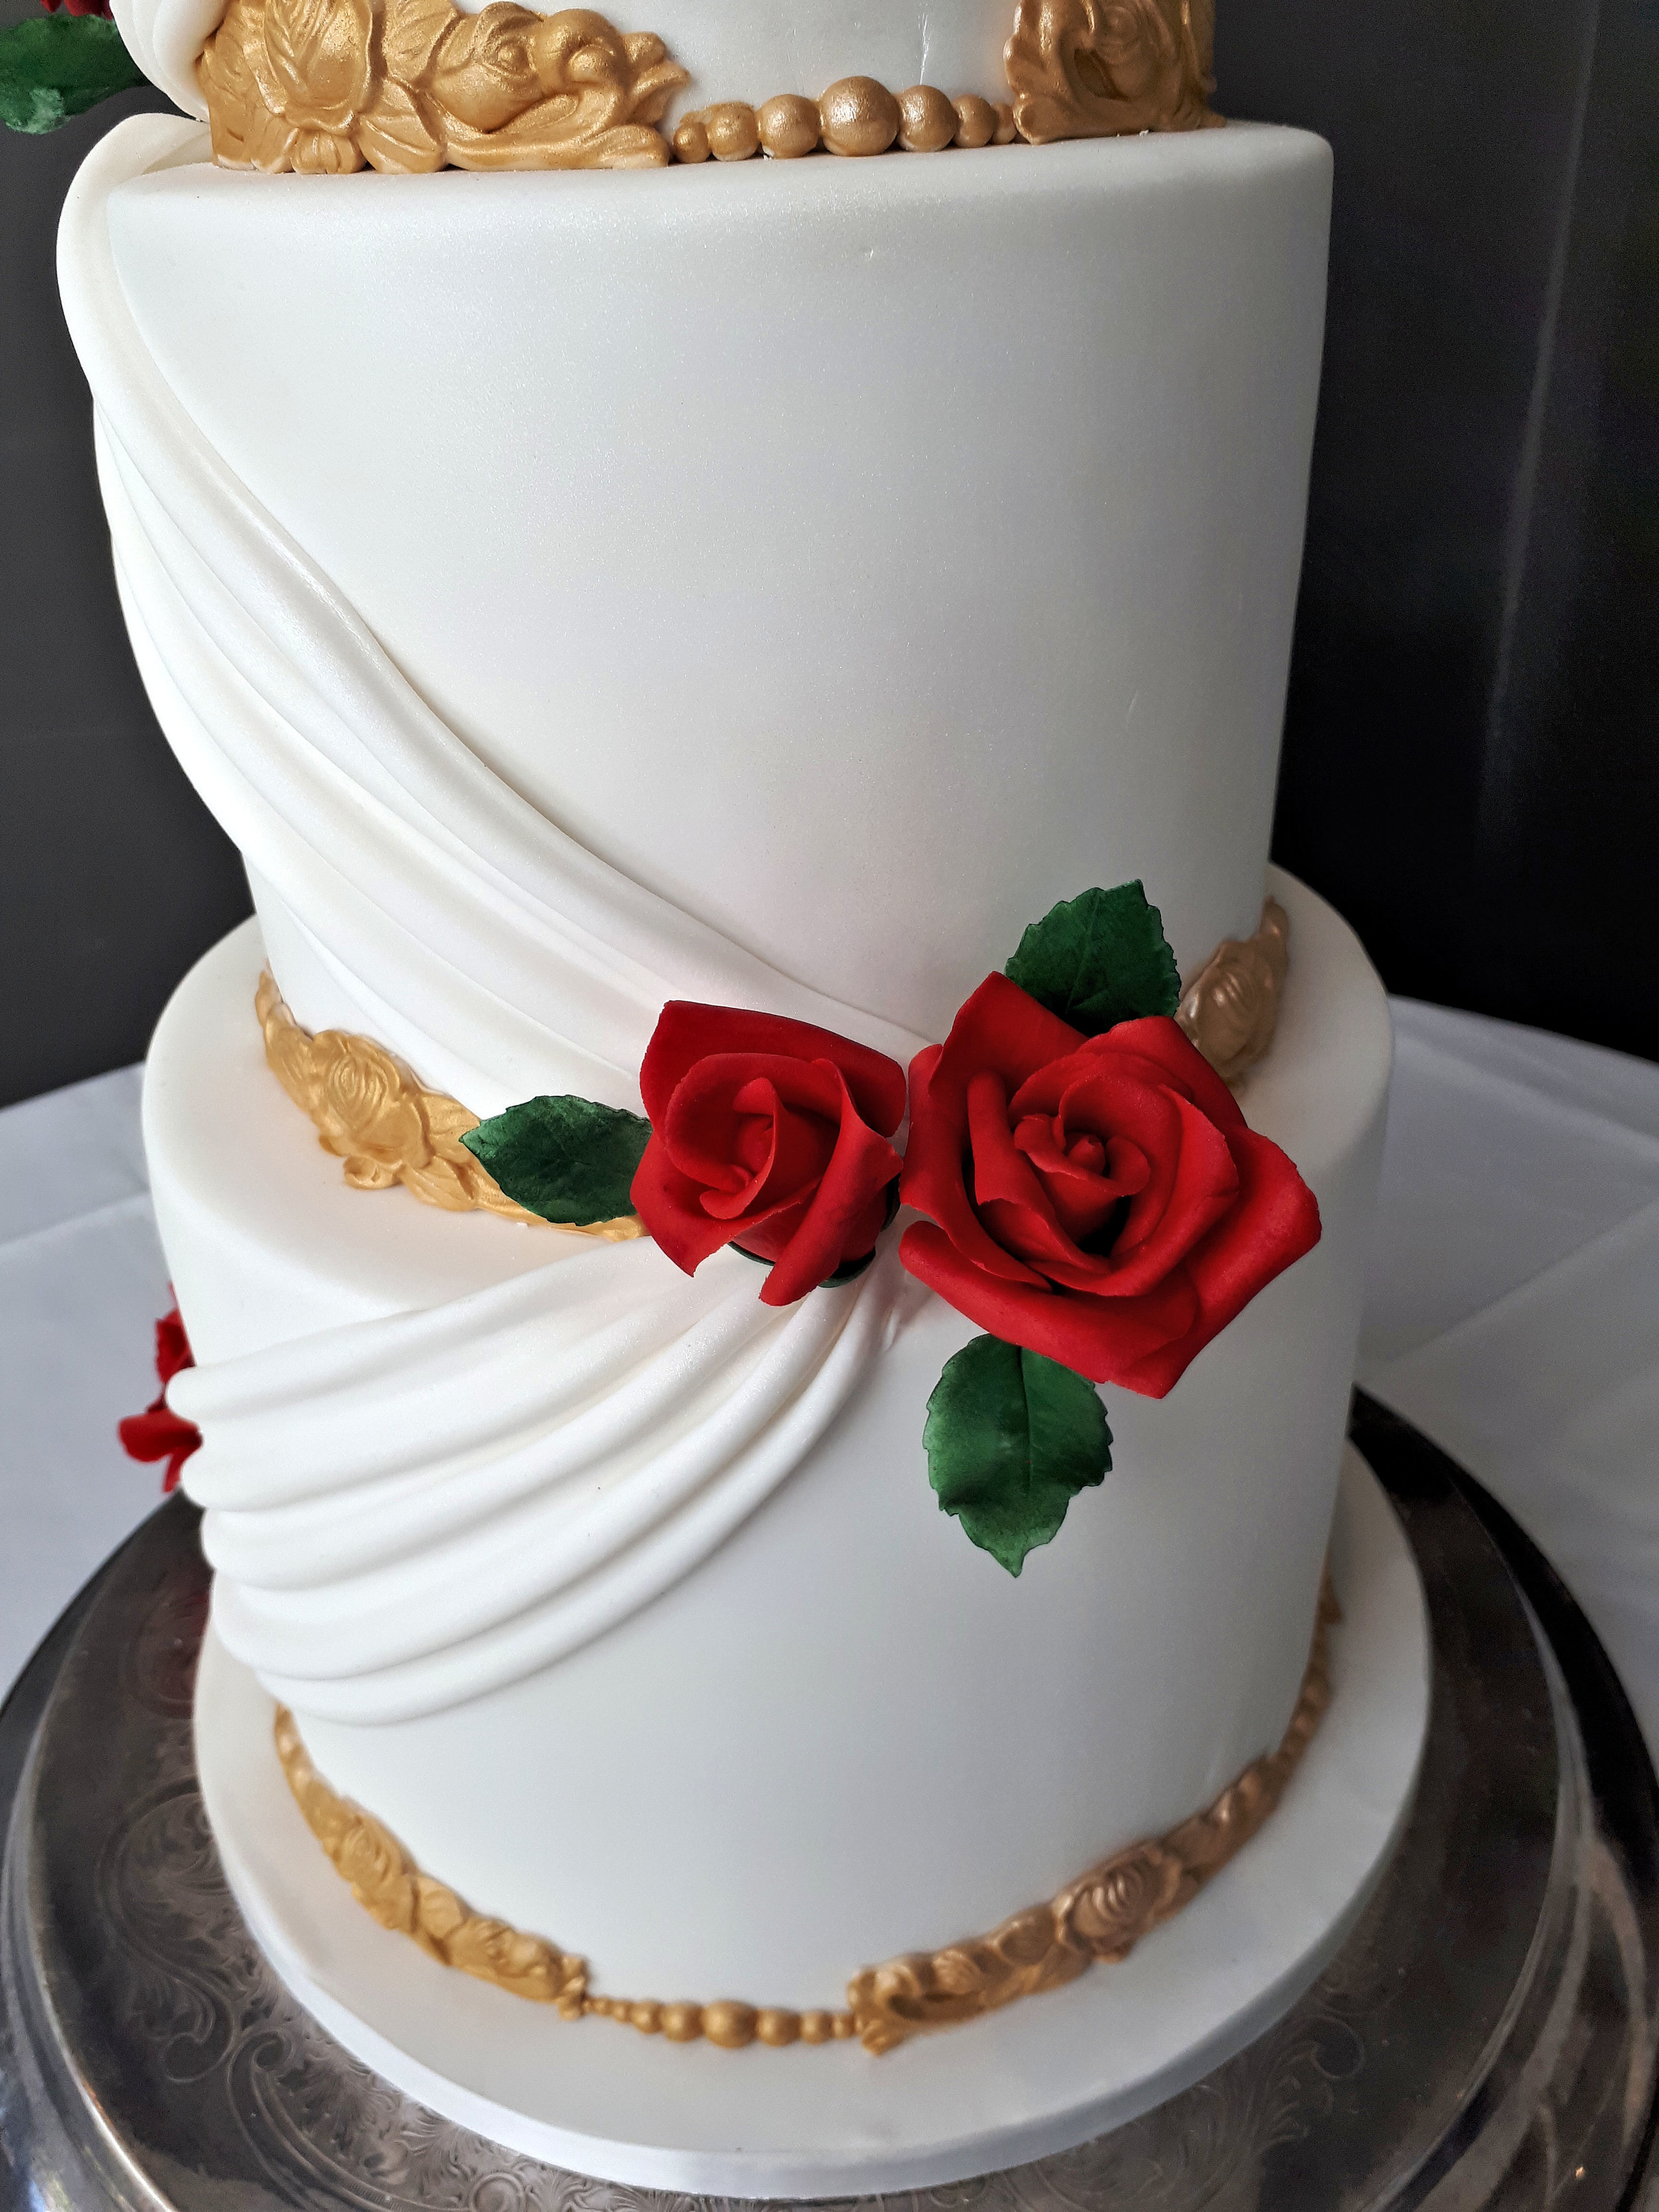 Grecian White & Gold Wedding Cake 3.jpg